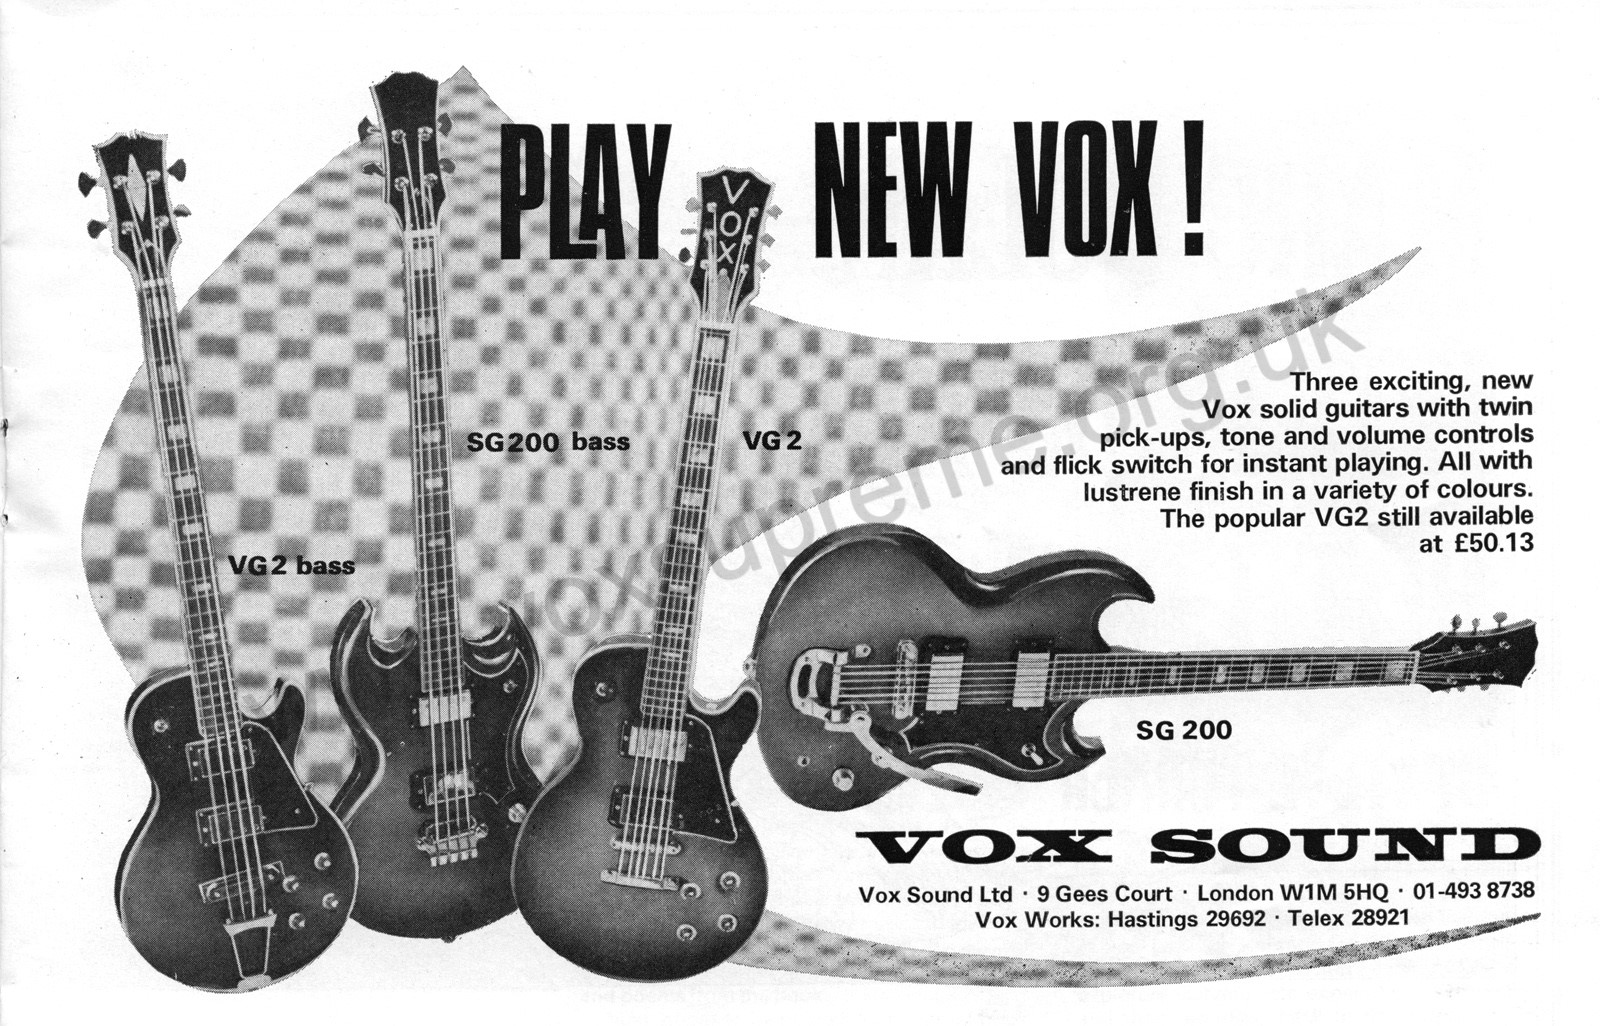 Beat Instrumental magazine, November 1971, advert for new guitars